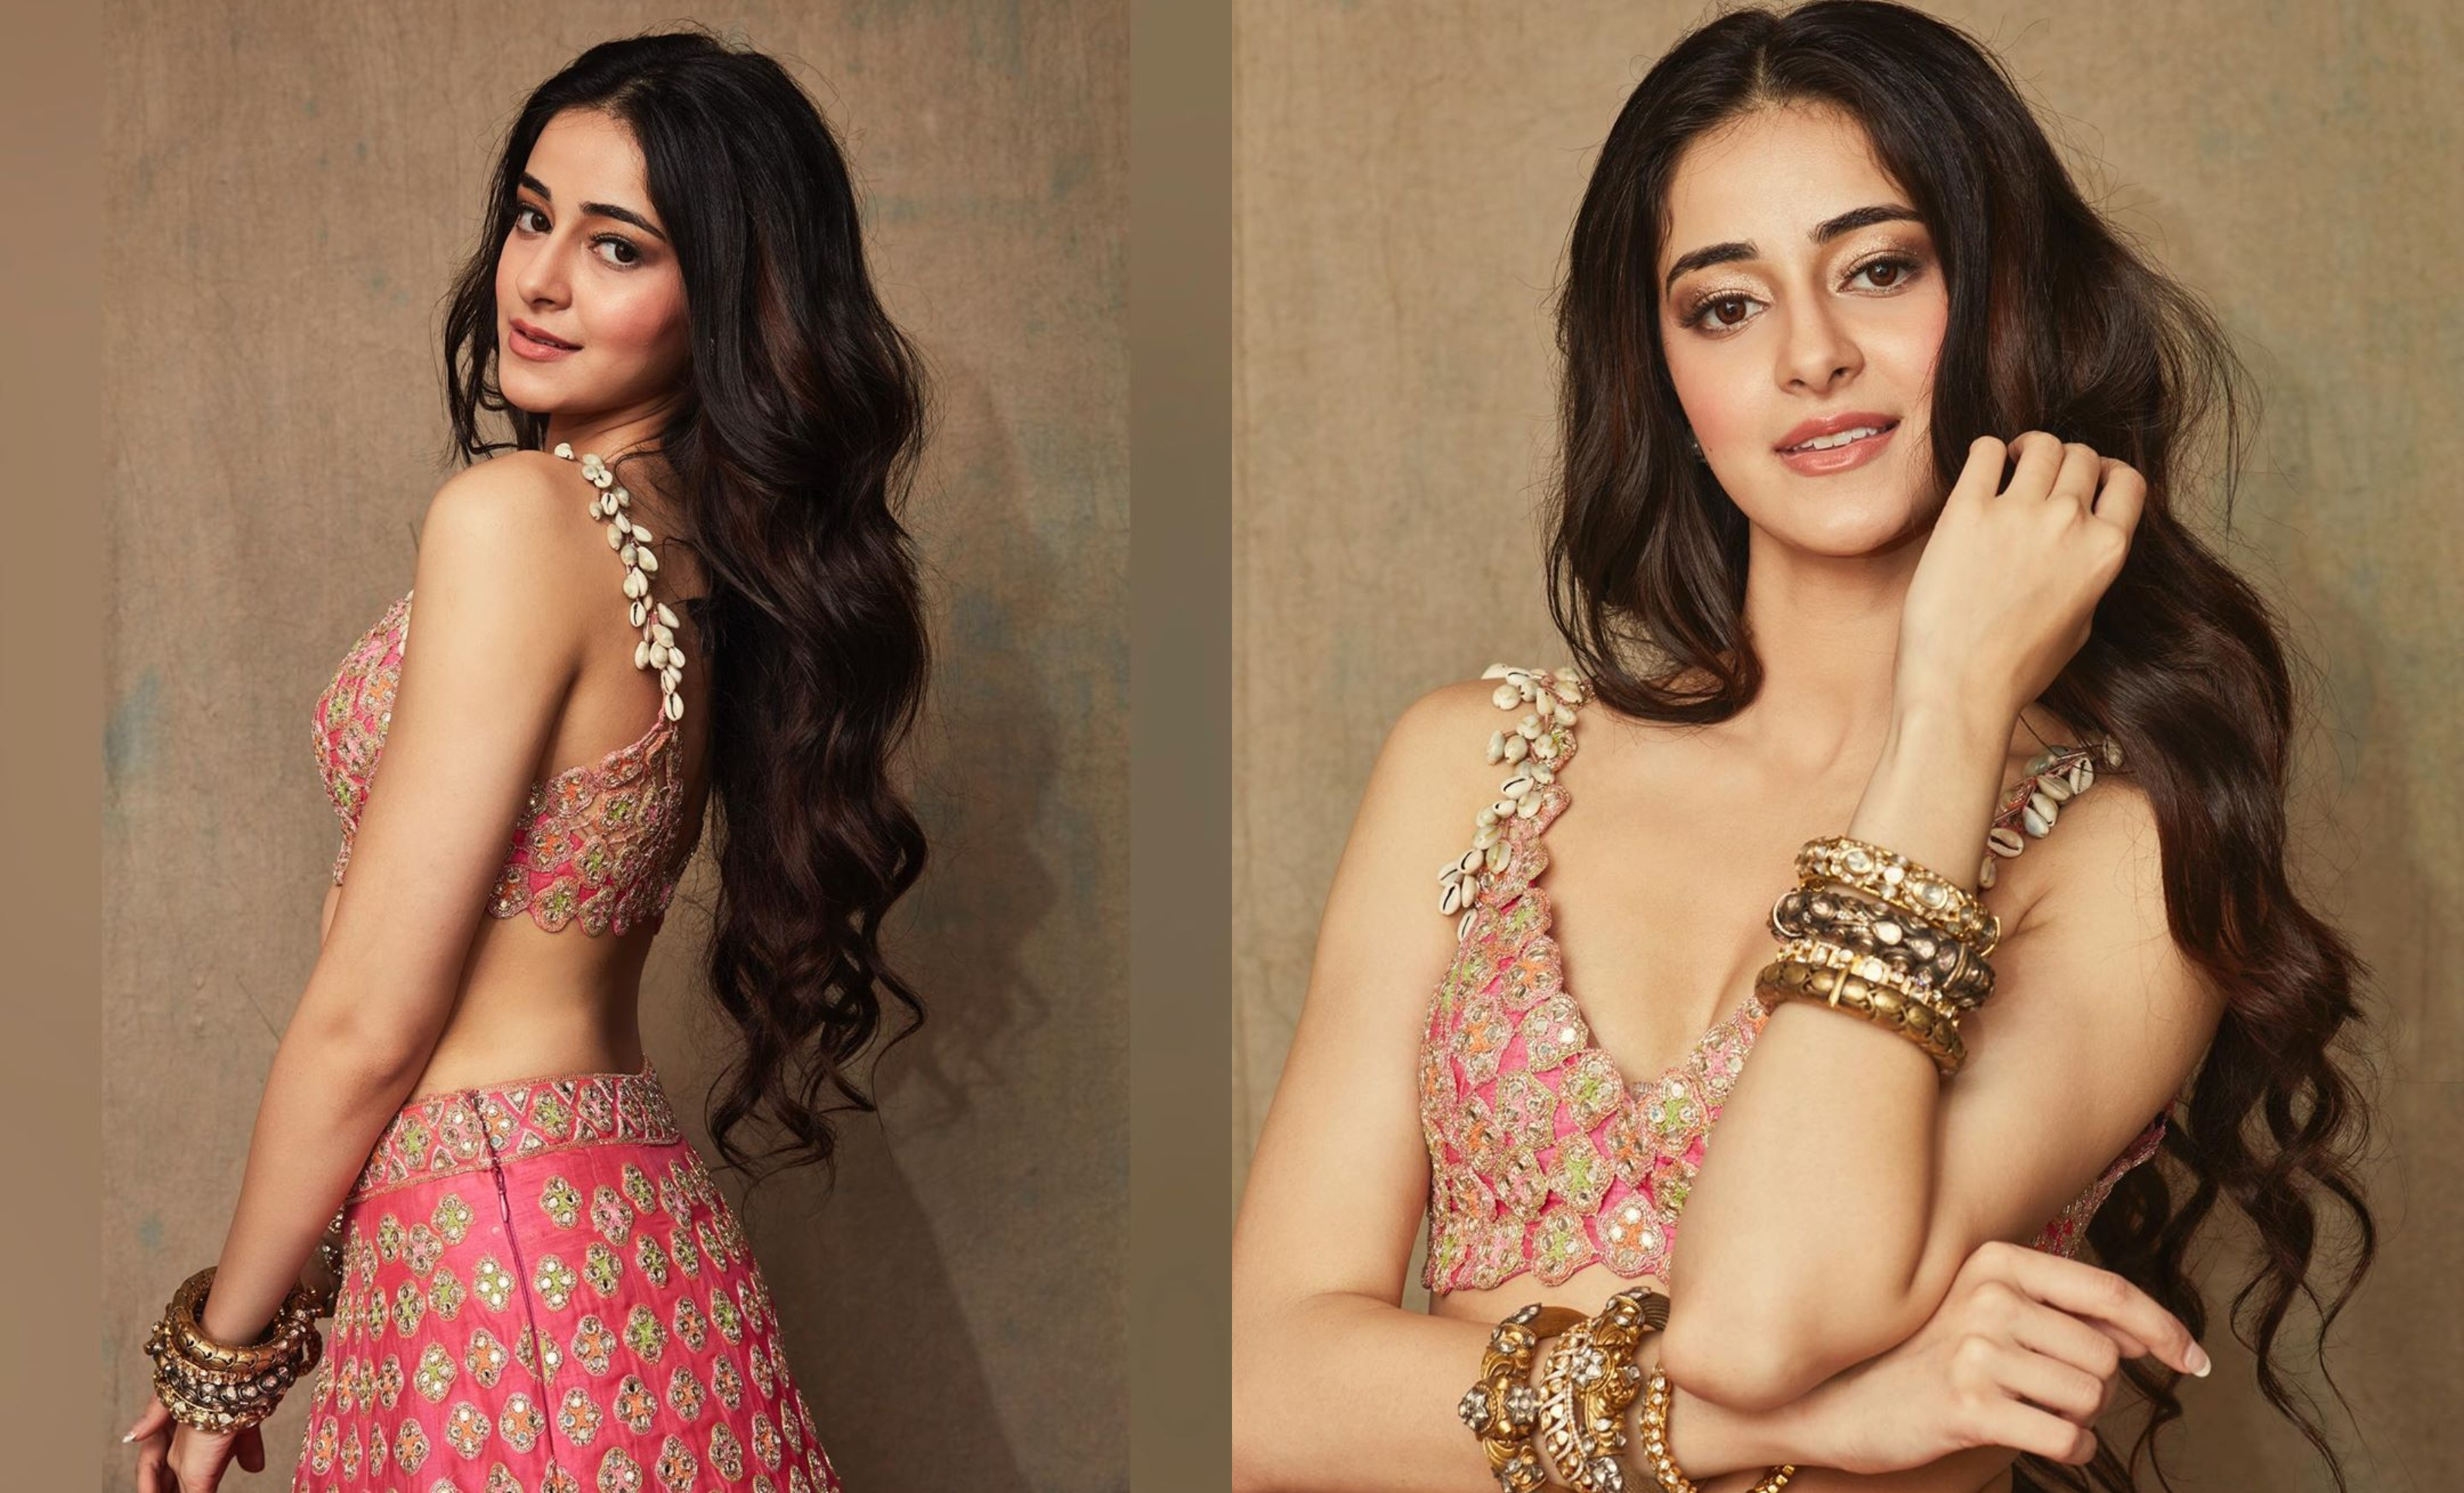 I try to behave like a normal teenager, says Ananya Pandey